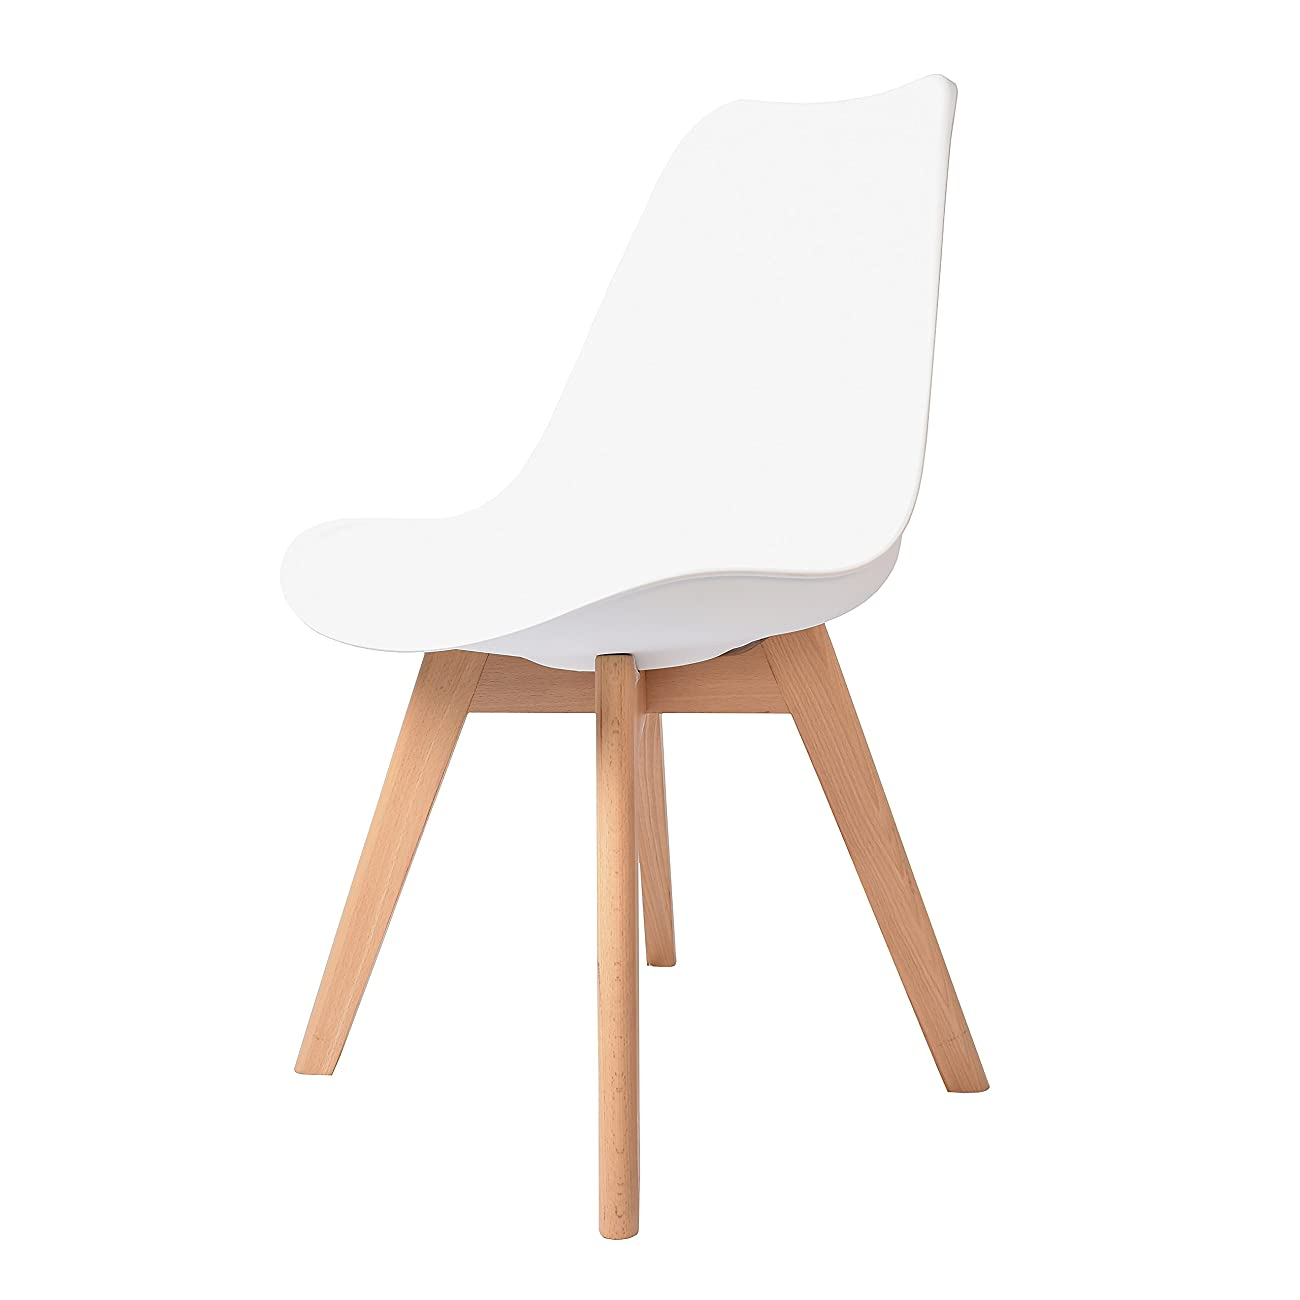 Buschman Set of Two White Eames-Style Mid Century Modern Dining Room Wooden Legs Soft Padded Chairs 4